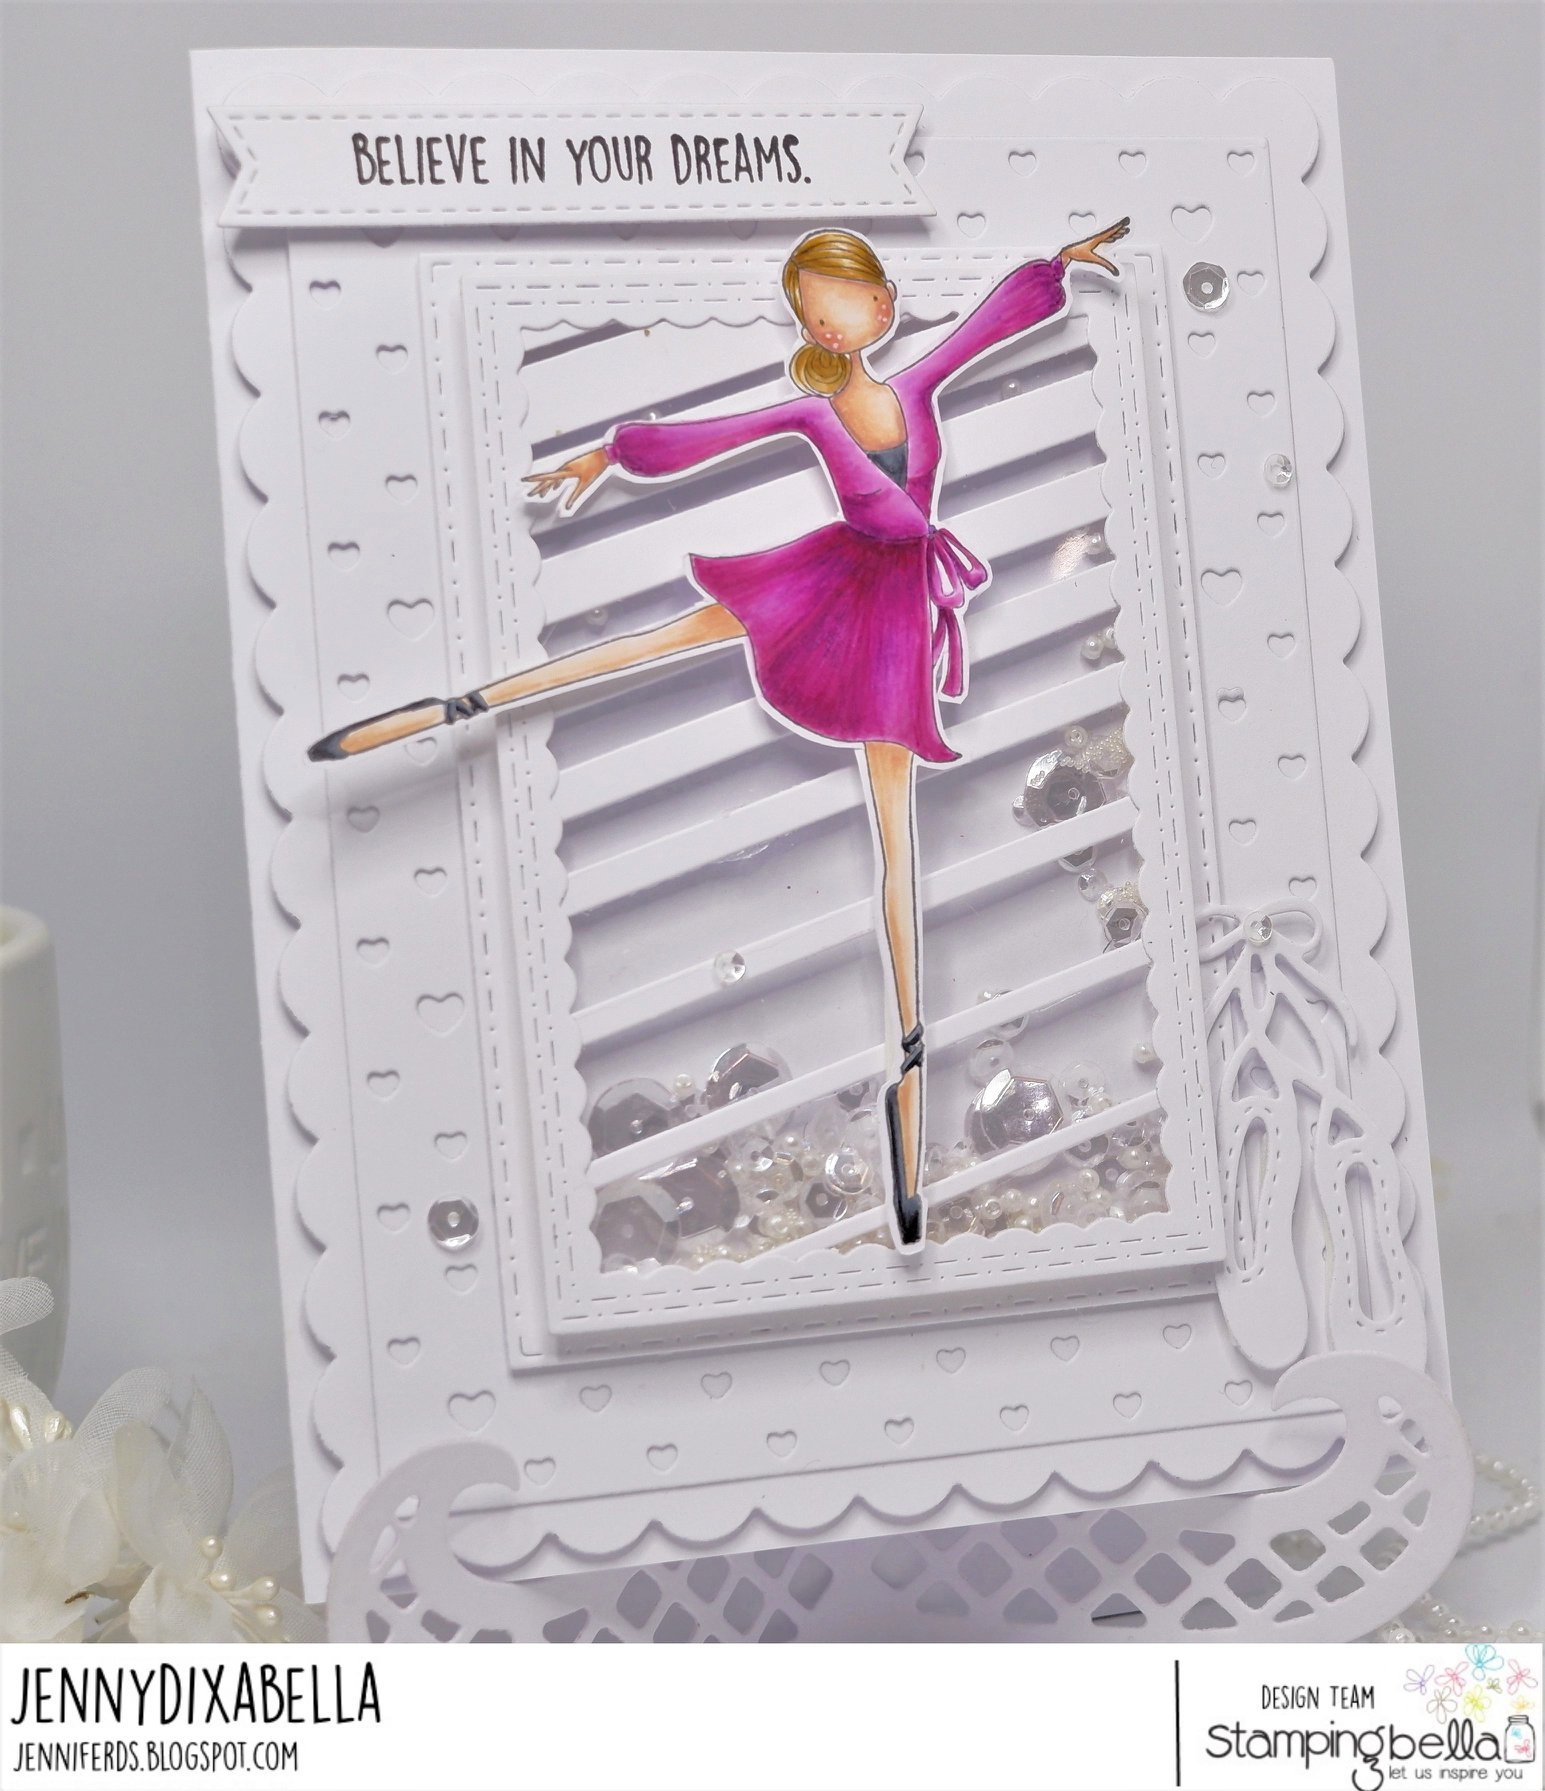 www.stampingbella.com: rubber stamp used: UPTOWN GIRL STEPHANIE loves BALLET, card by Jenny Dix